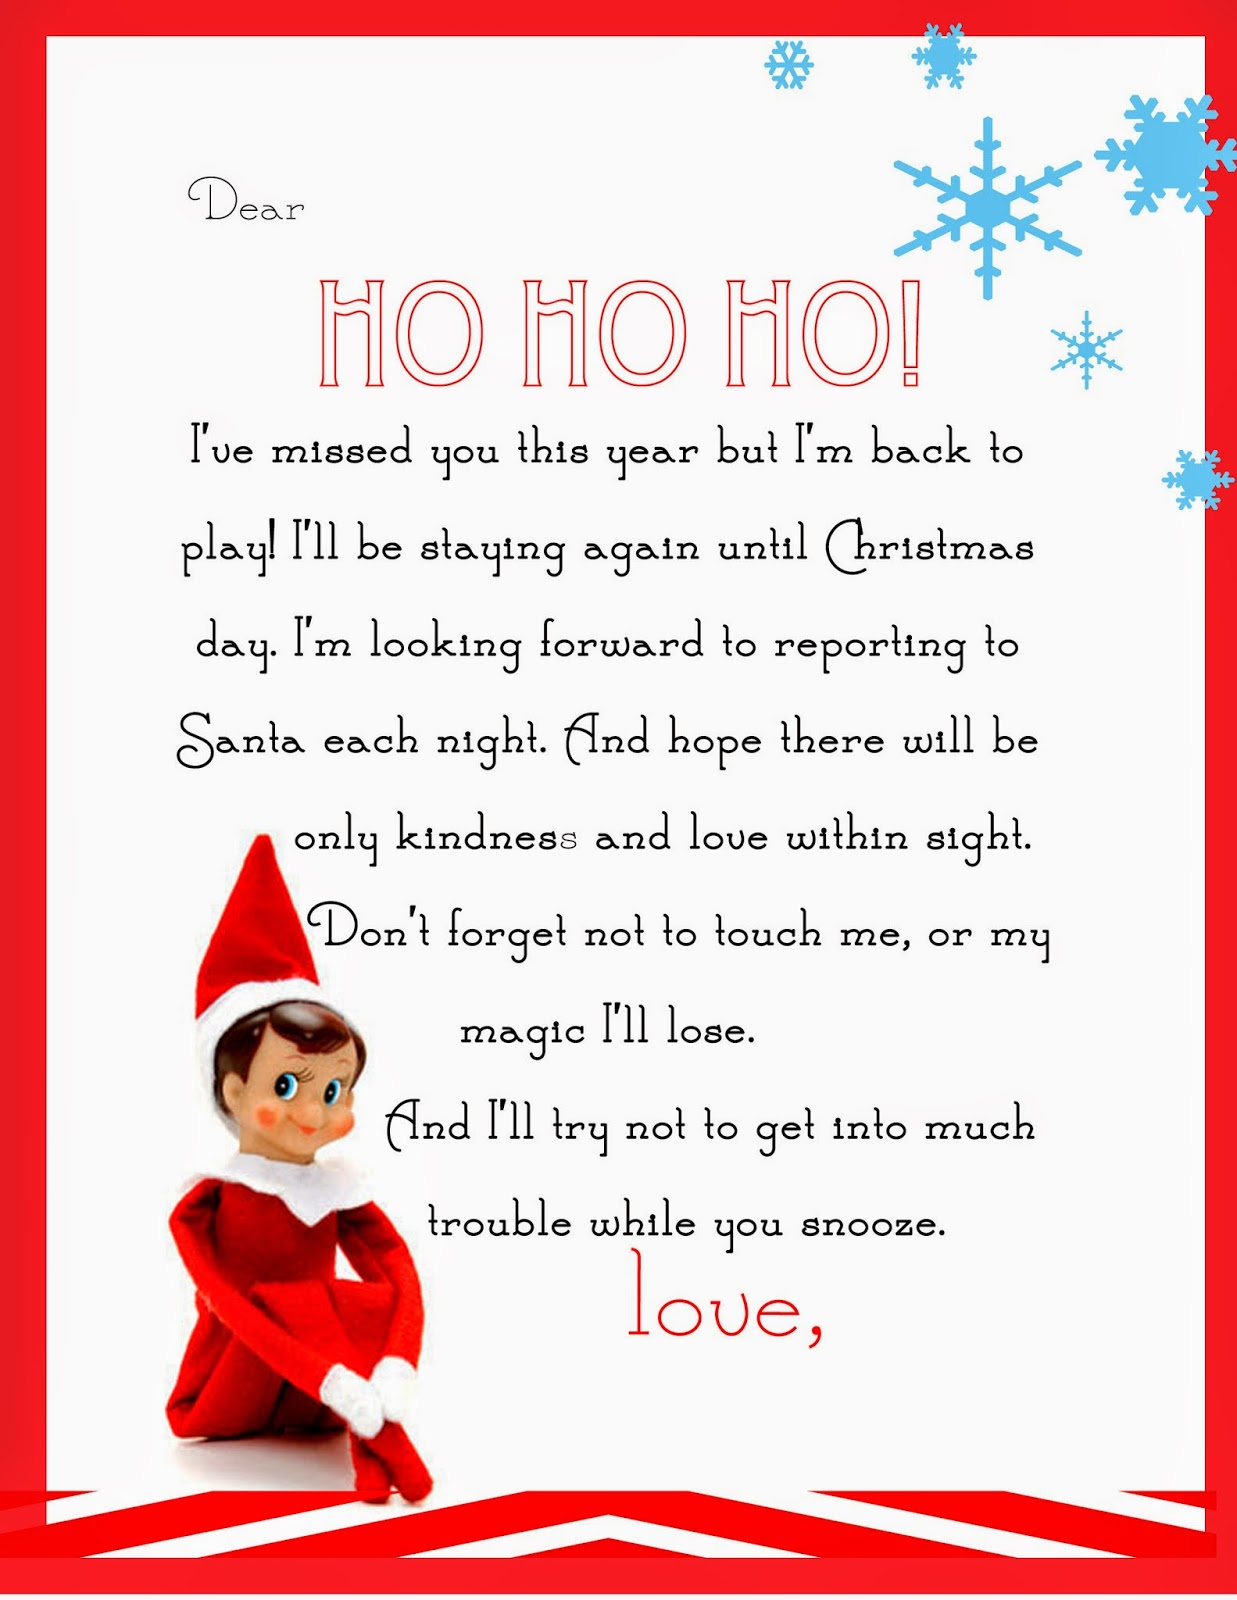 Elf on the shelf ideas for arrival 10 free printables letters elf on the shelf letter free printable from yummy mummy kitchen letters from santa spiritdancerdesigns